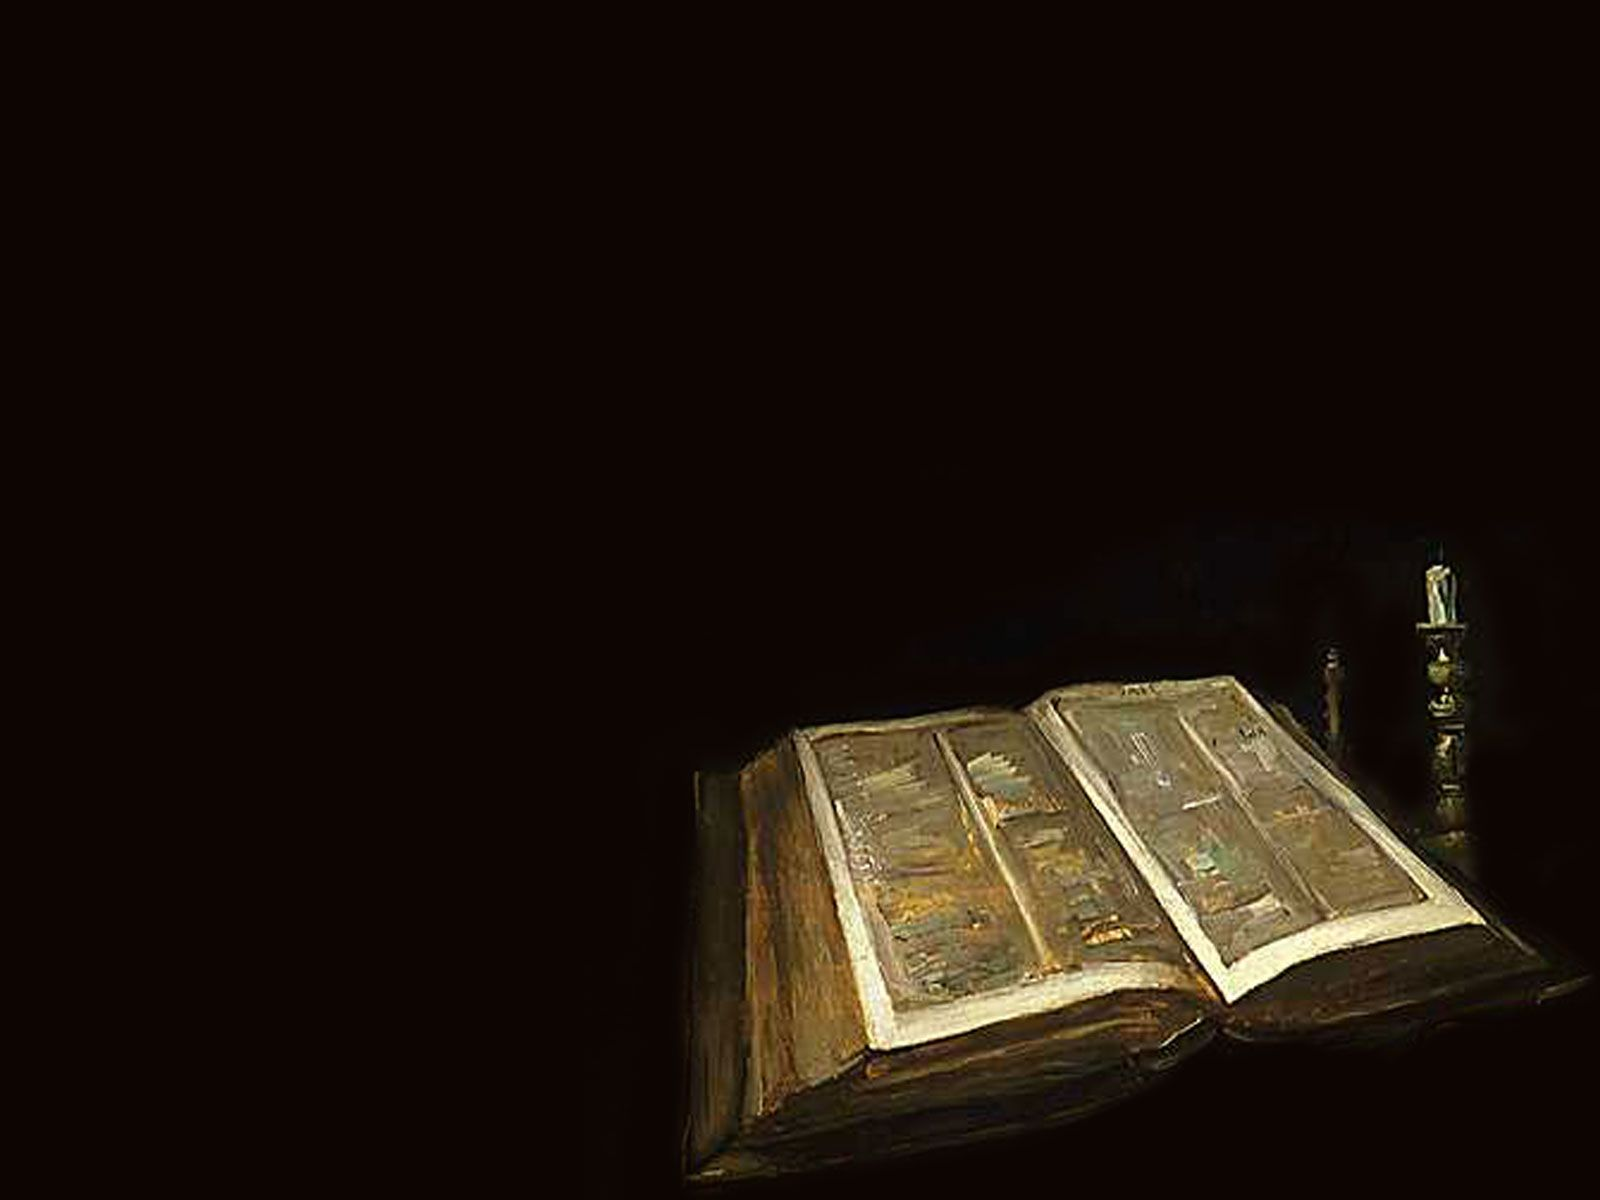 Holy bible II Wallpaper   Christian Wallpapers and Backgrounds 1600x1200